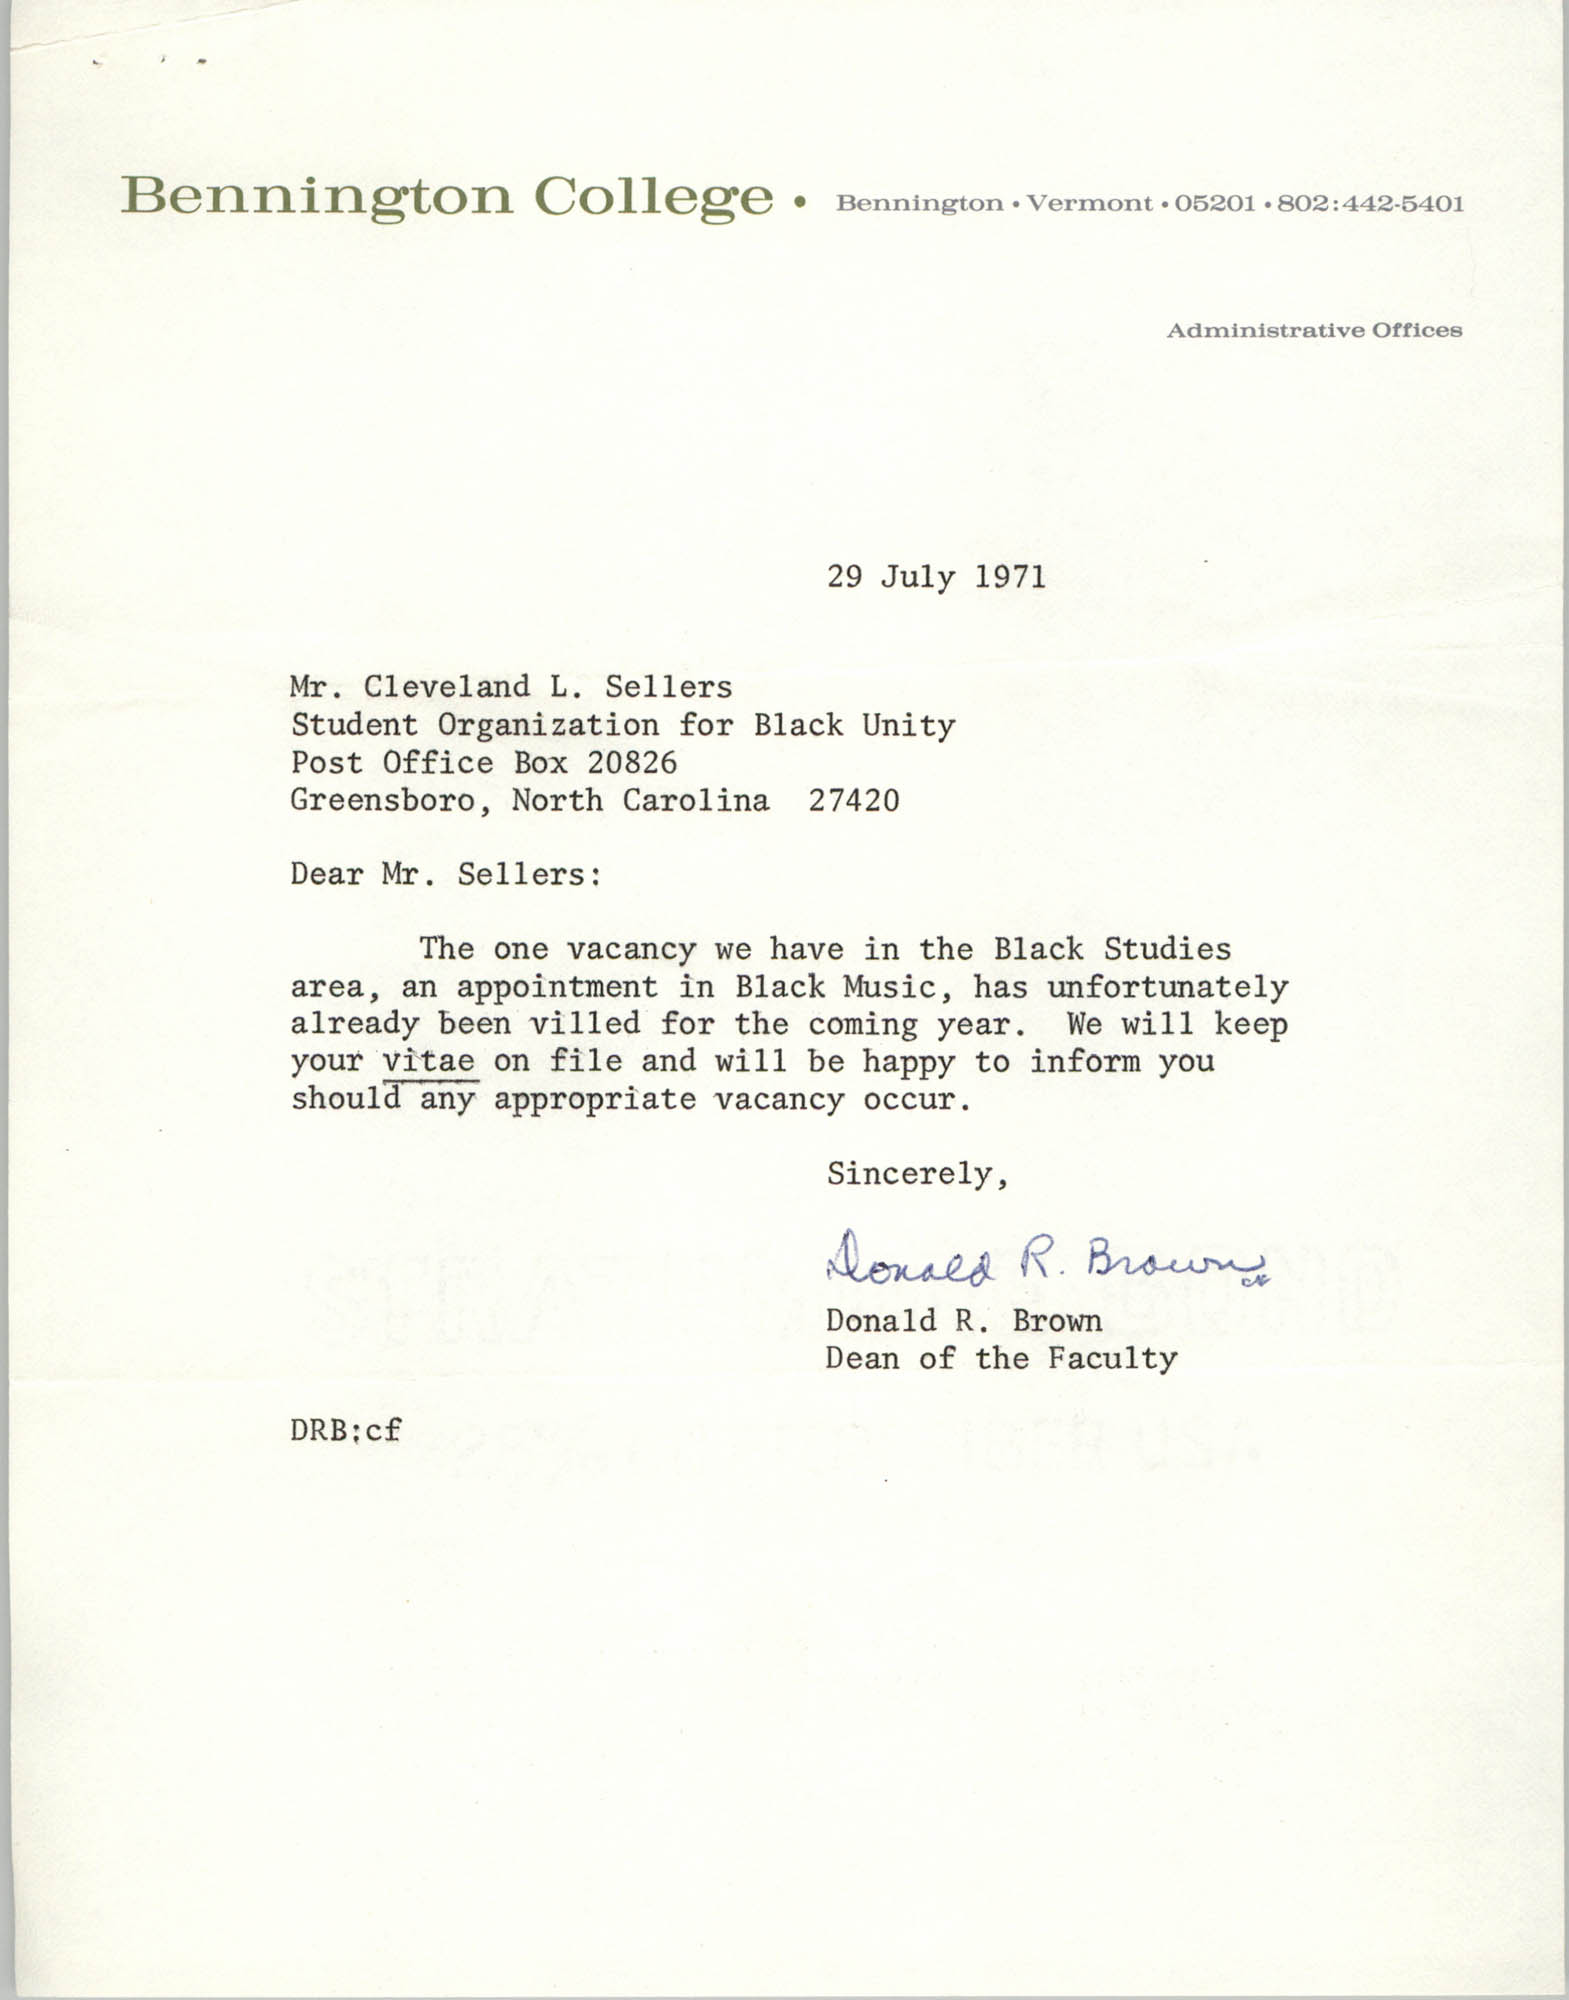 Letter from Donald R. Brown to Cleveland Sellers, July 29, 1971